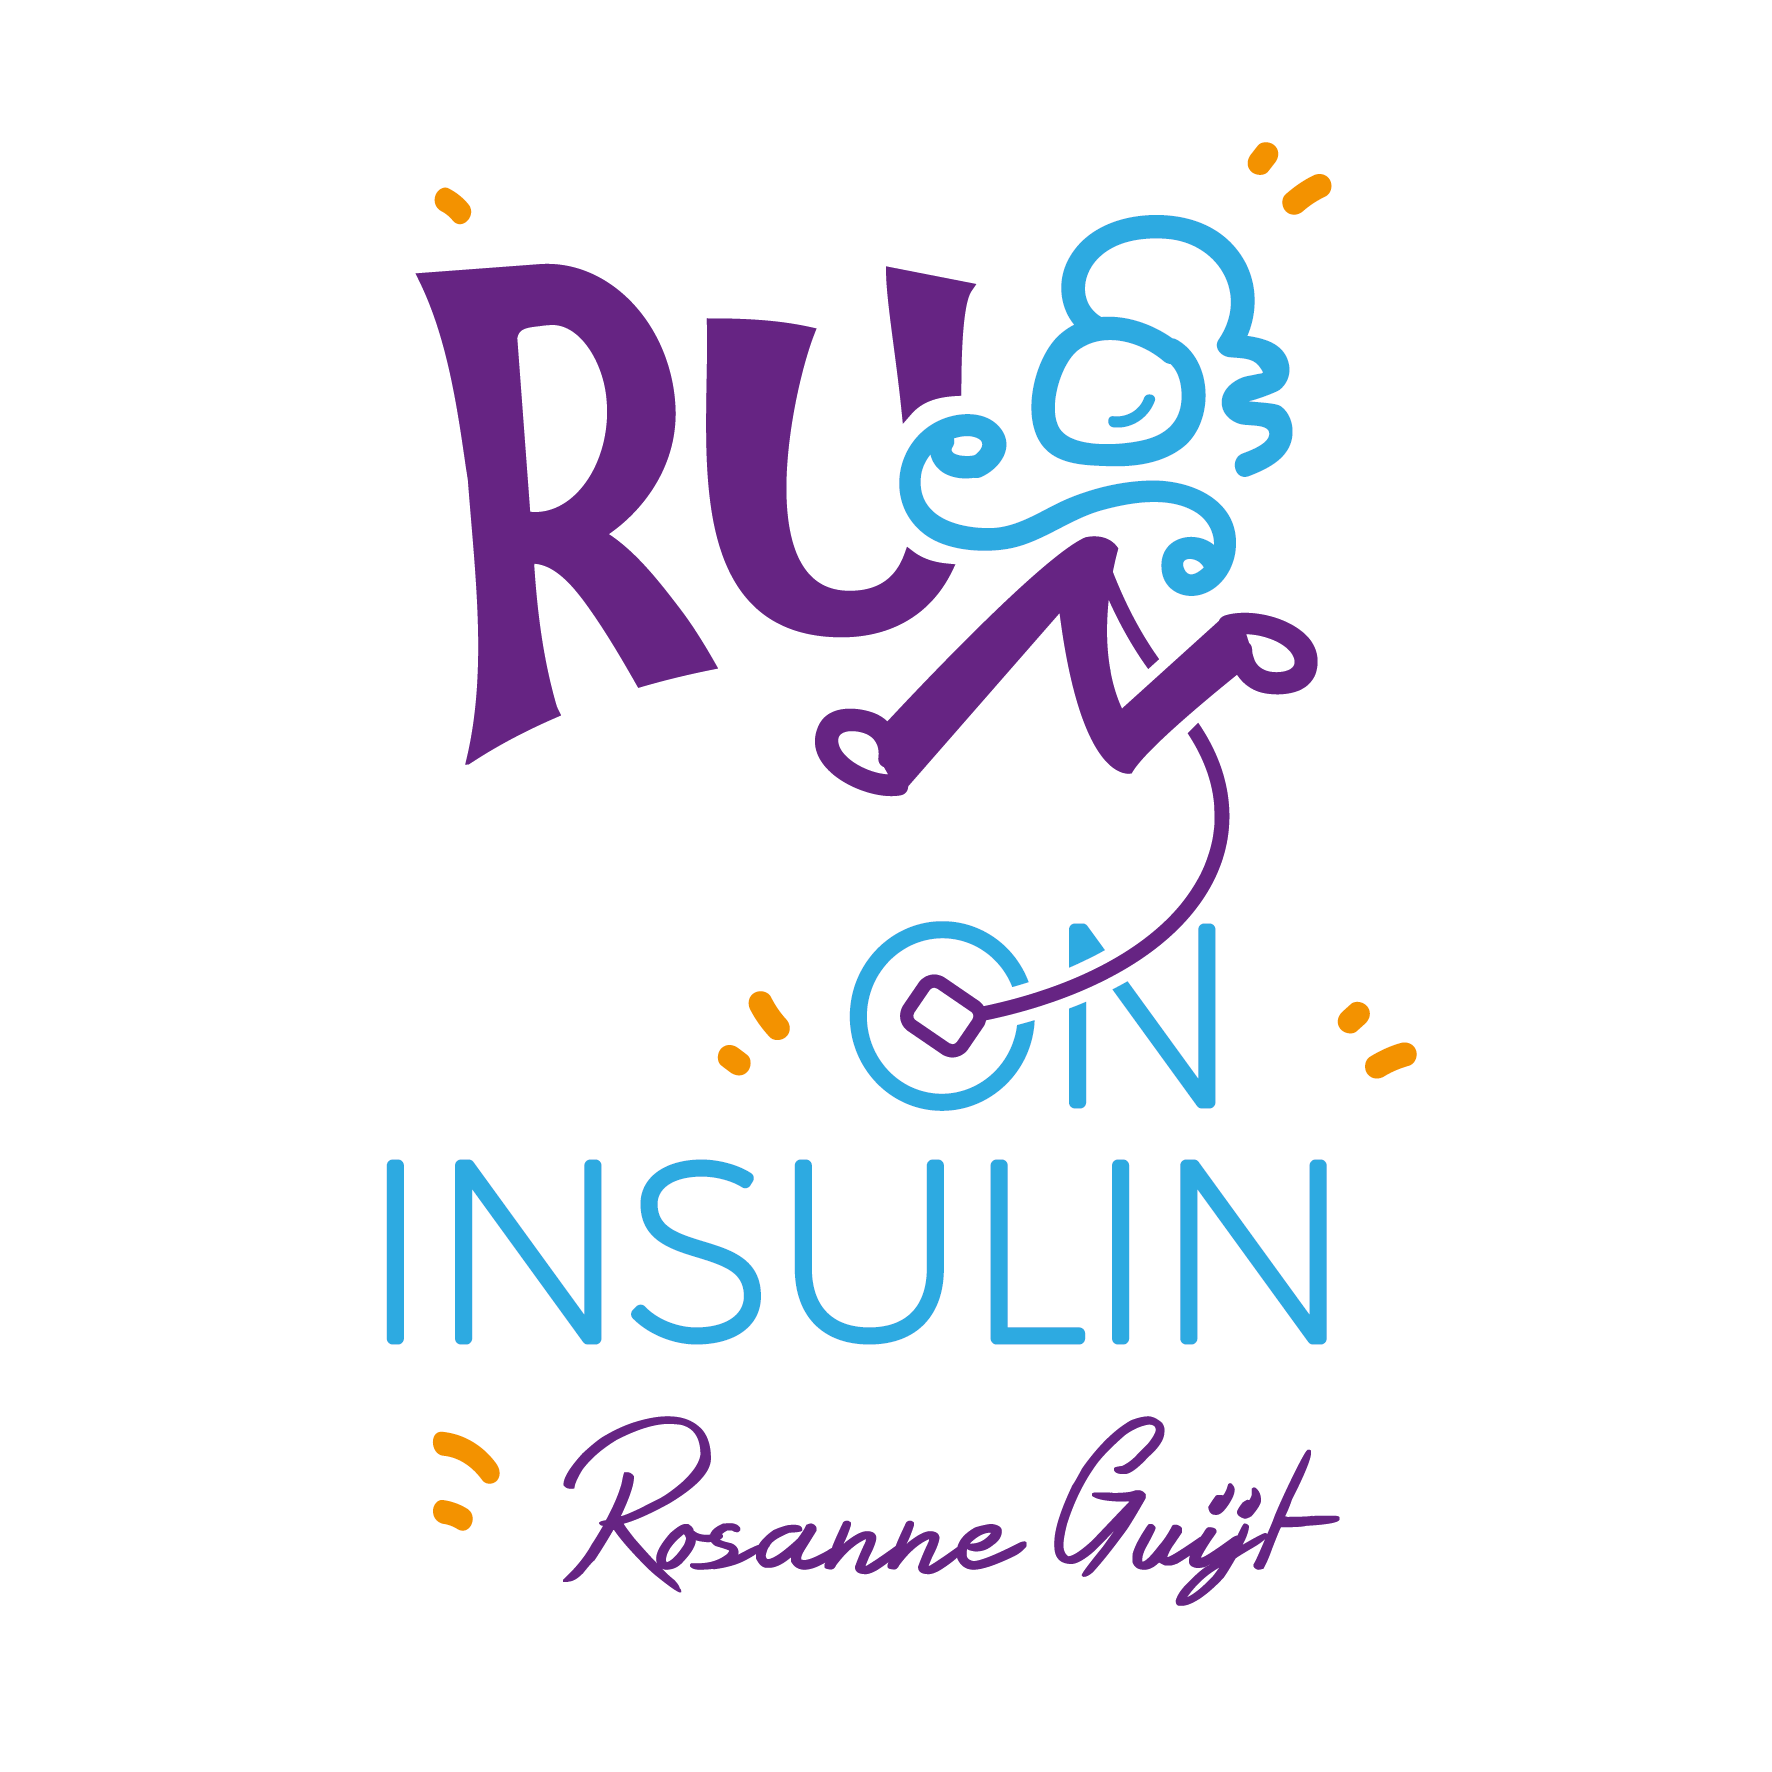 Run on insulin